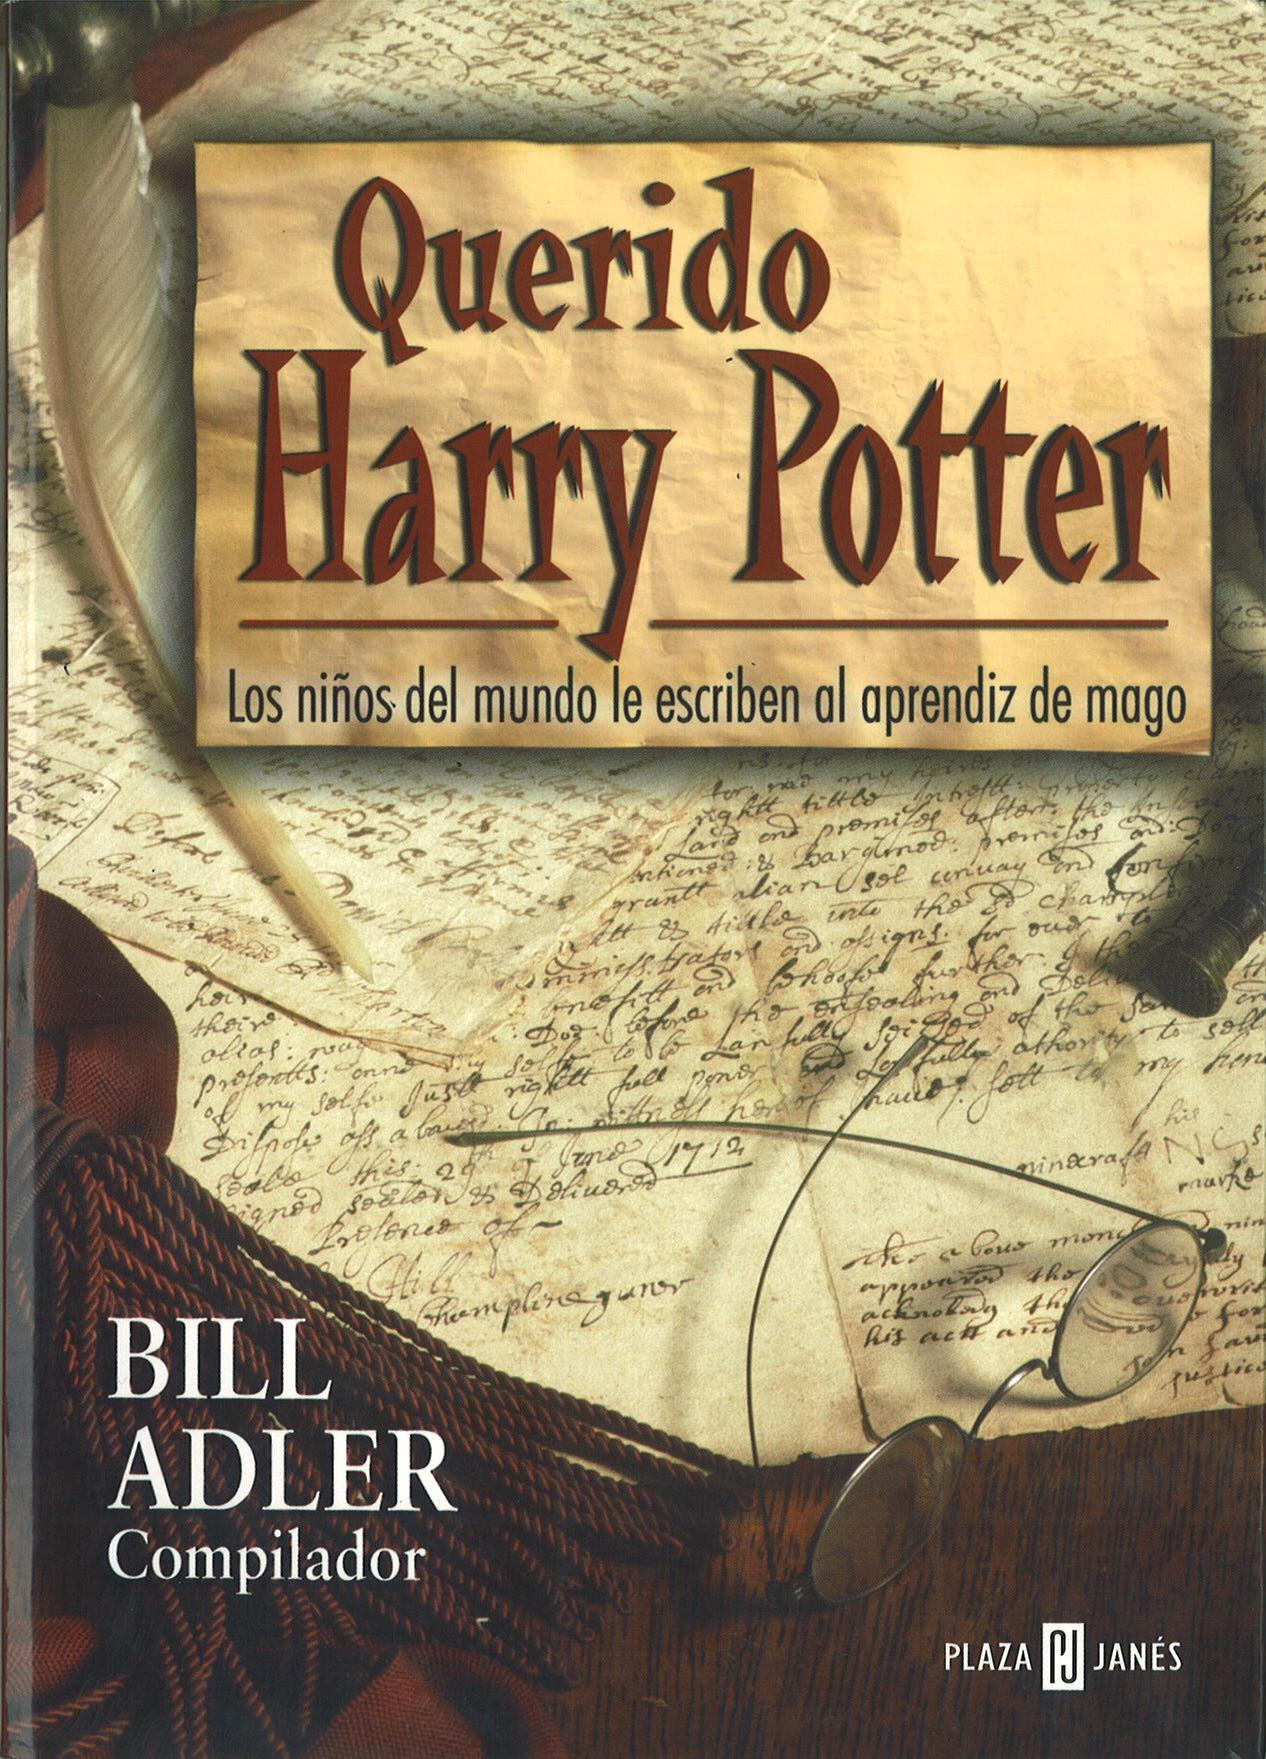 Harry Potter Libro 1 Recomendación Literaria Querido Harry Potter Bill